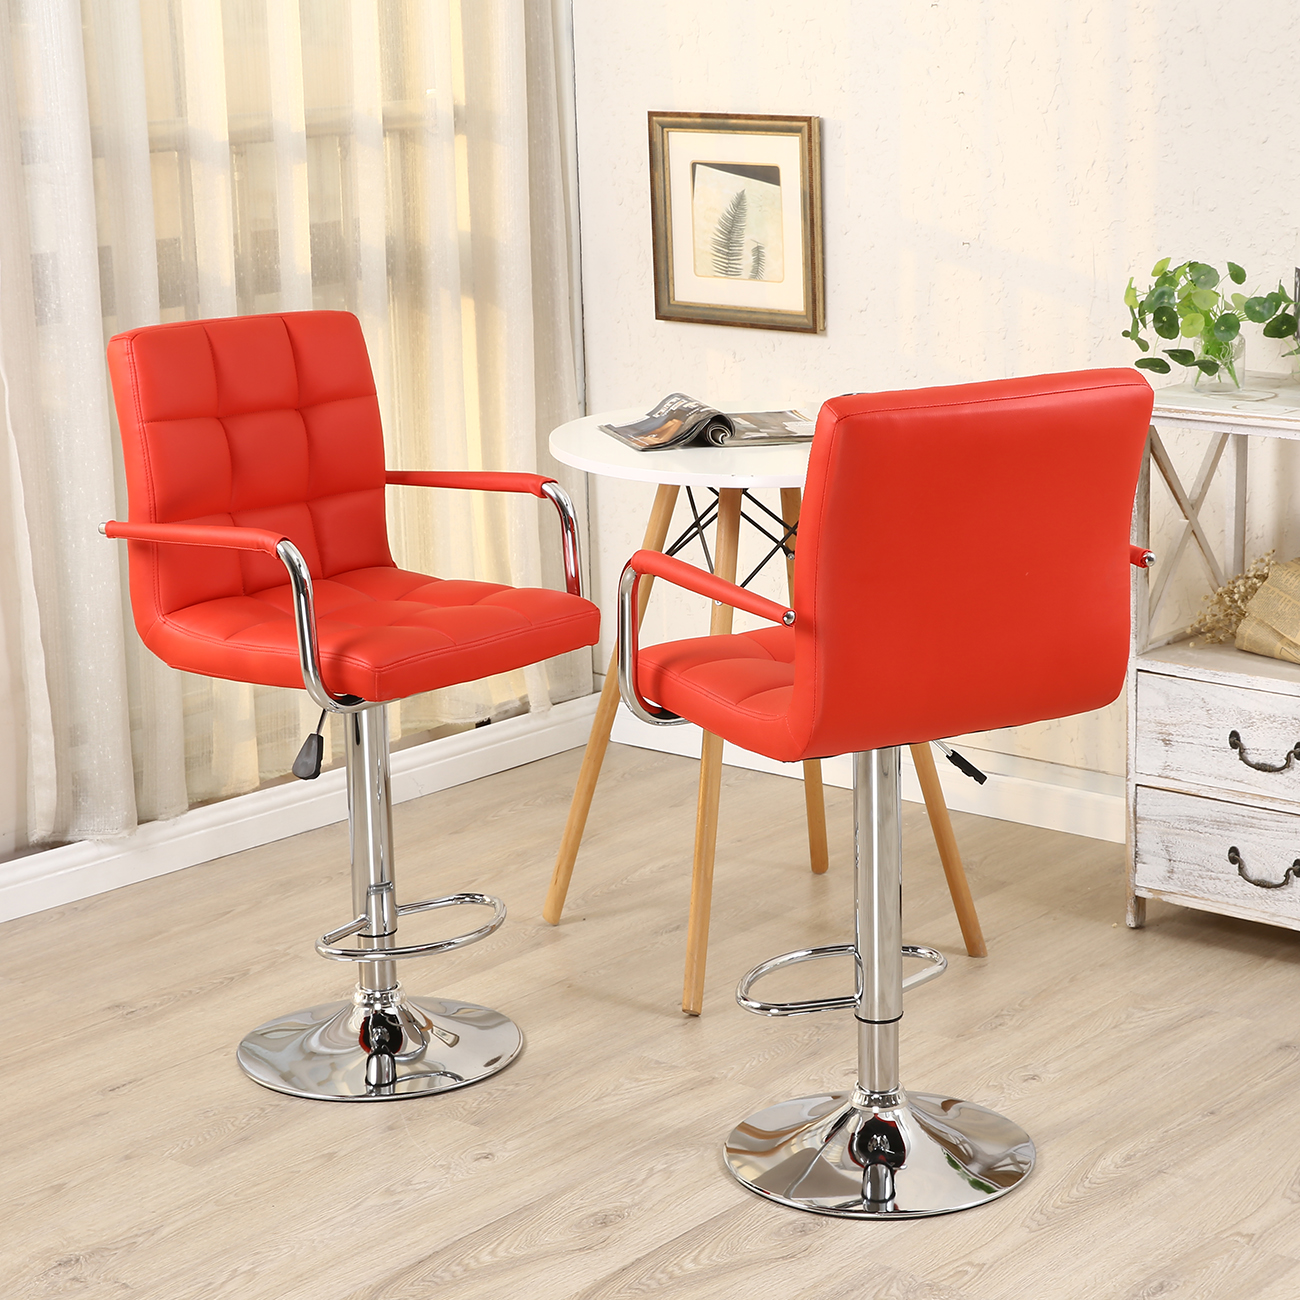 leather pub chair table rentals and chairs 2 bar stools modern hydraulic swivel pair